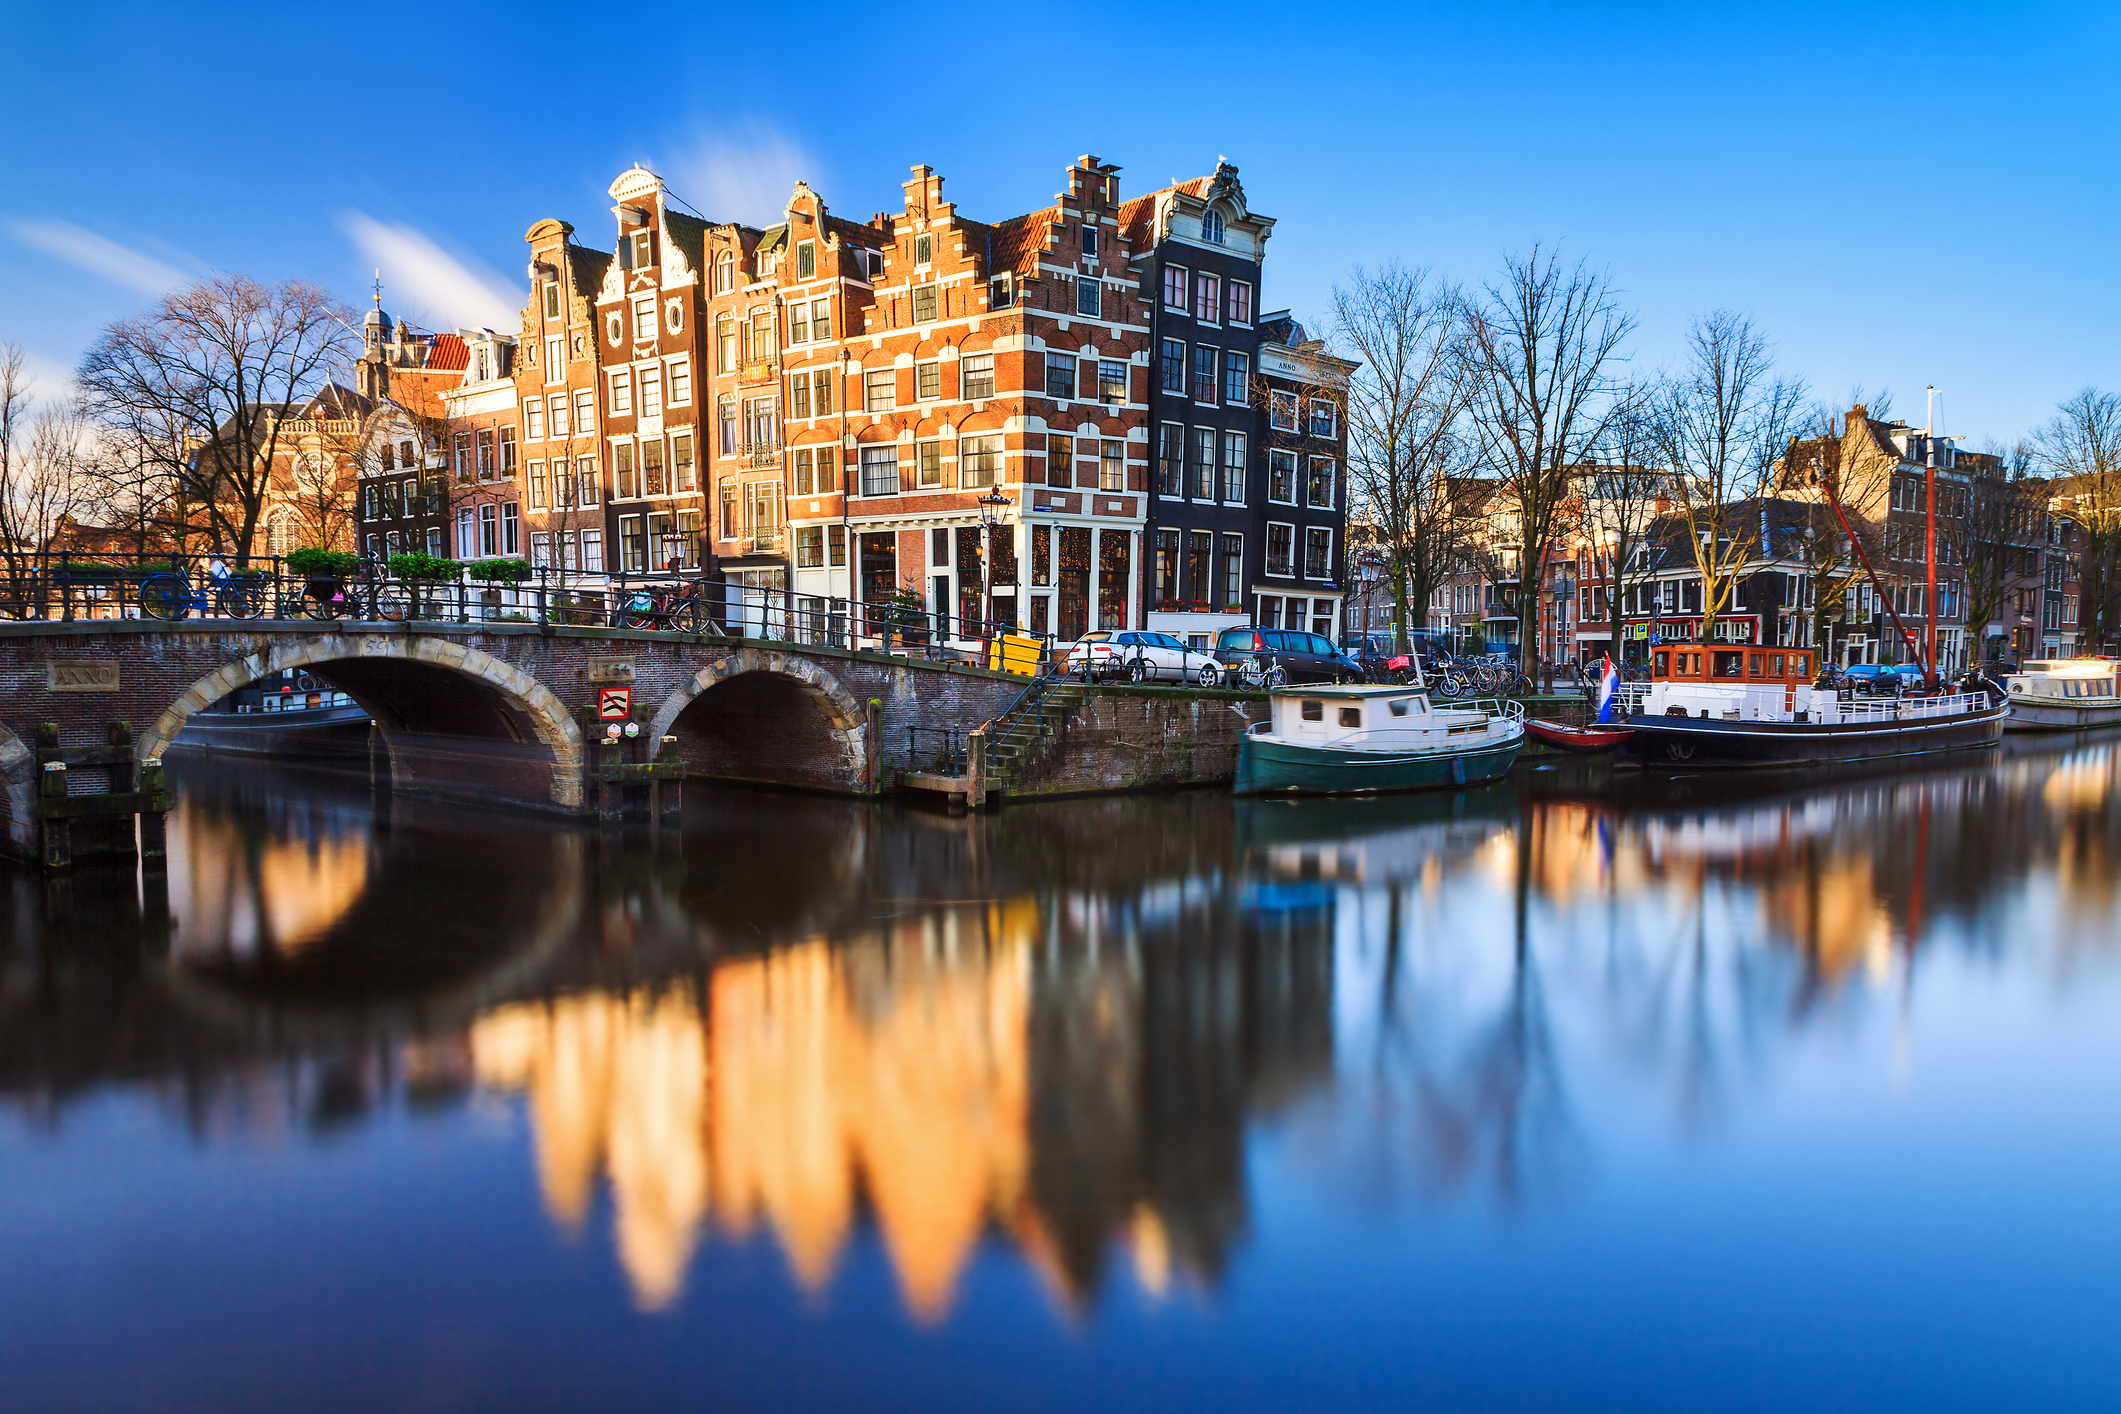 Best Things to do in Amsterdam in February